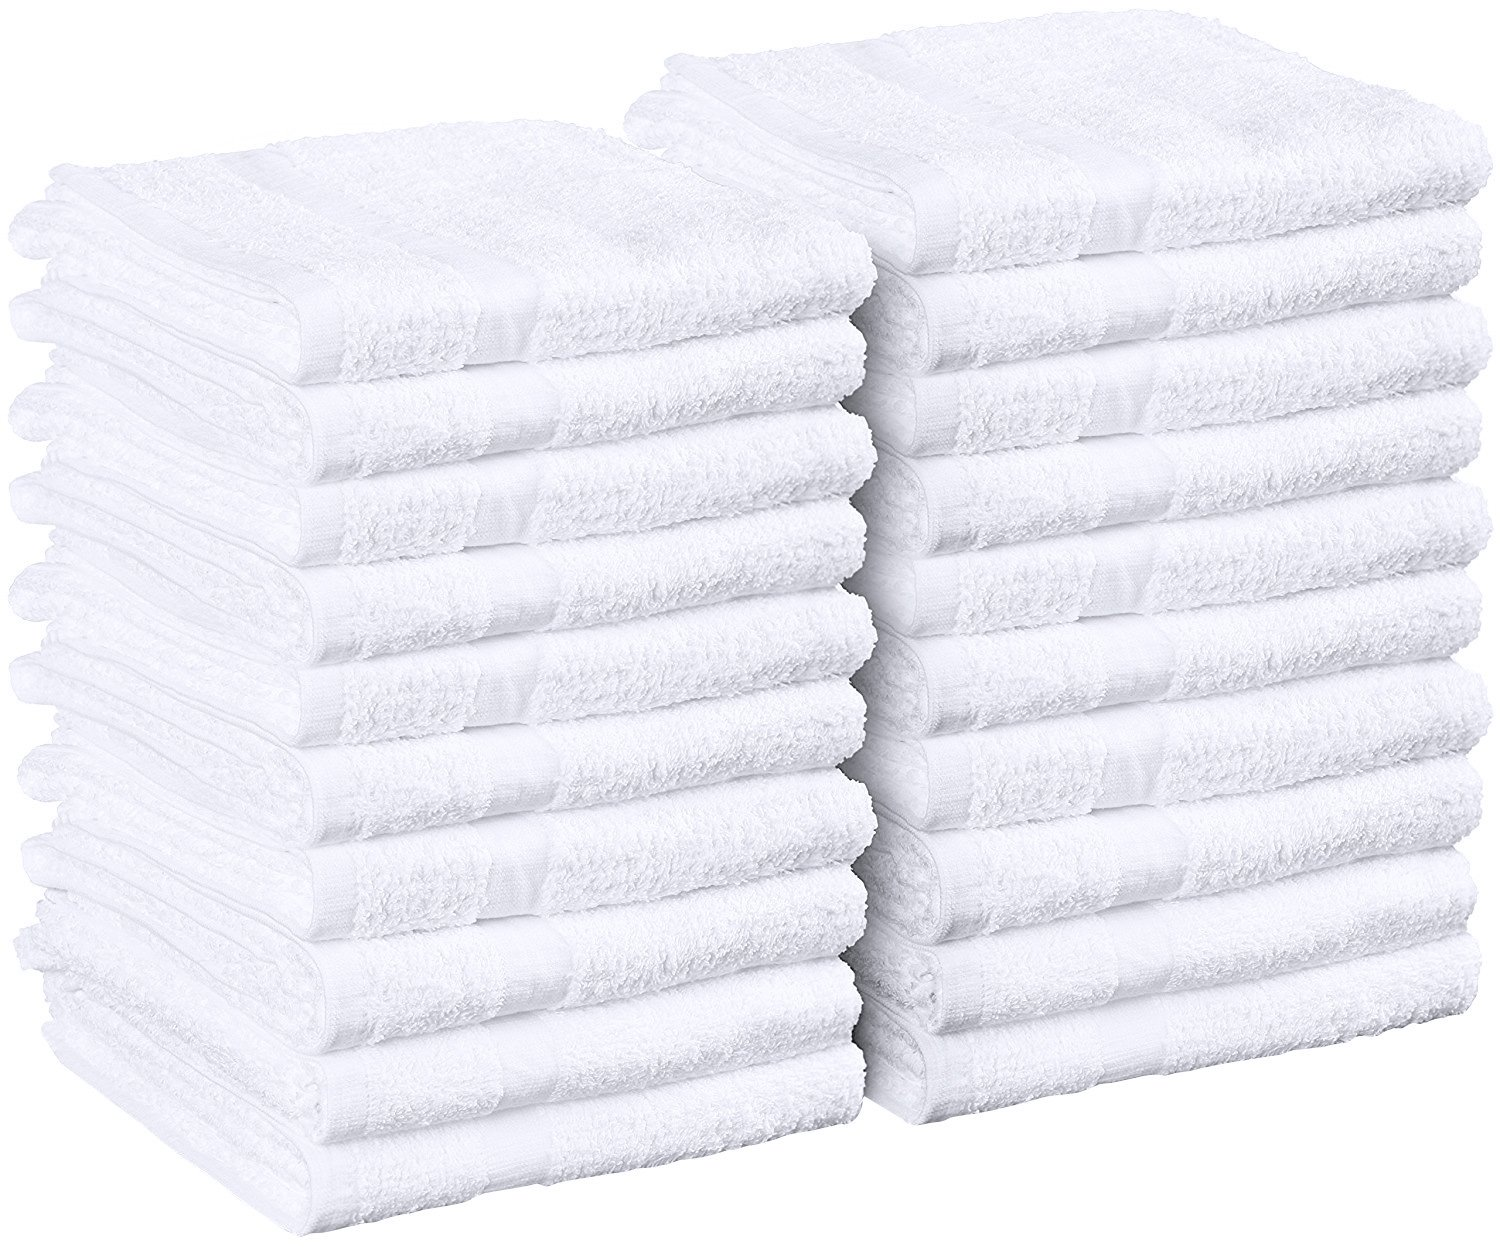 Utopia Towels Salon Towels, 24 Pack (Not Bleach Proof, 16 x 27 Inches, White) Hand Towels, Gym Towels by Utopia Towels